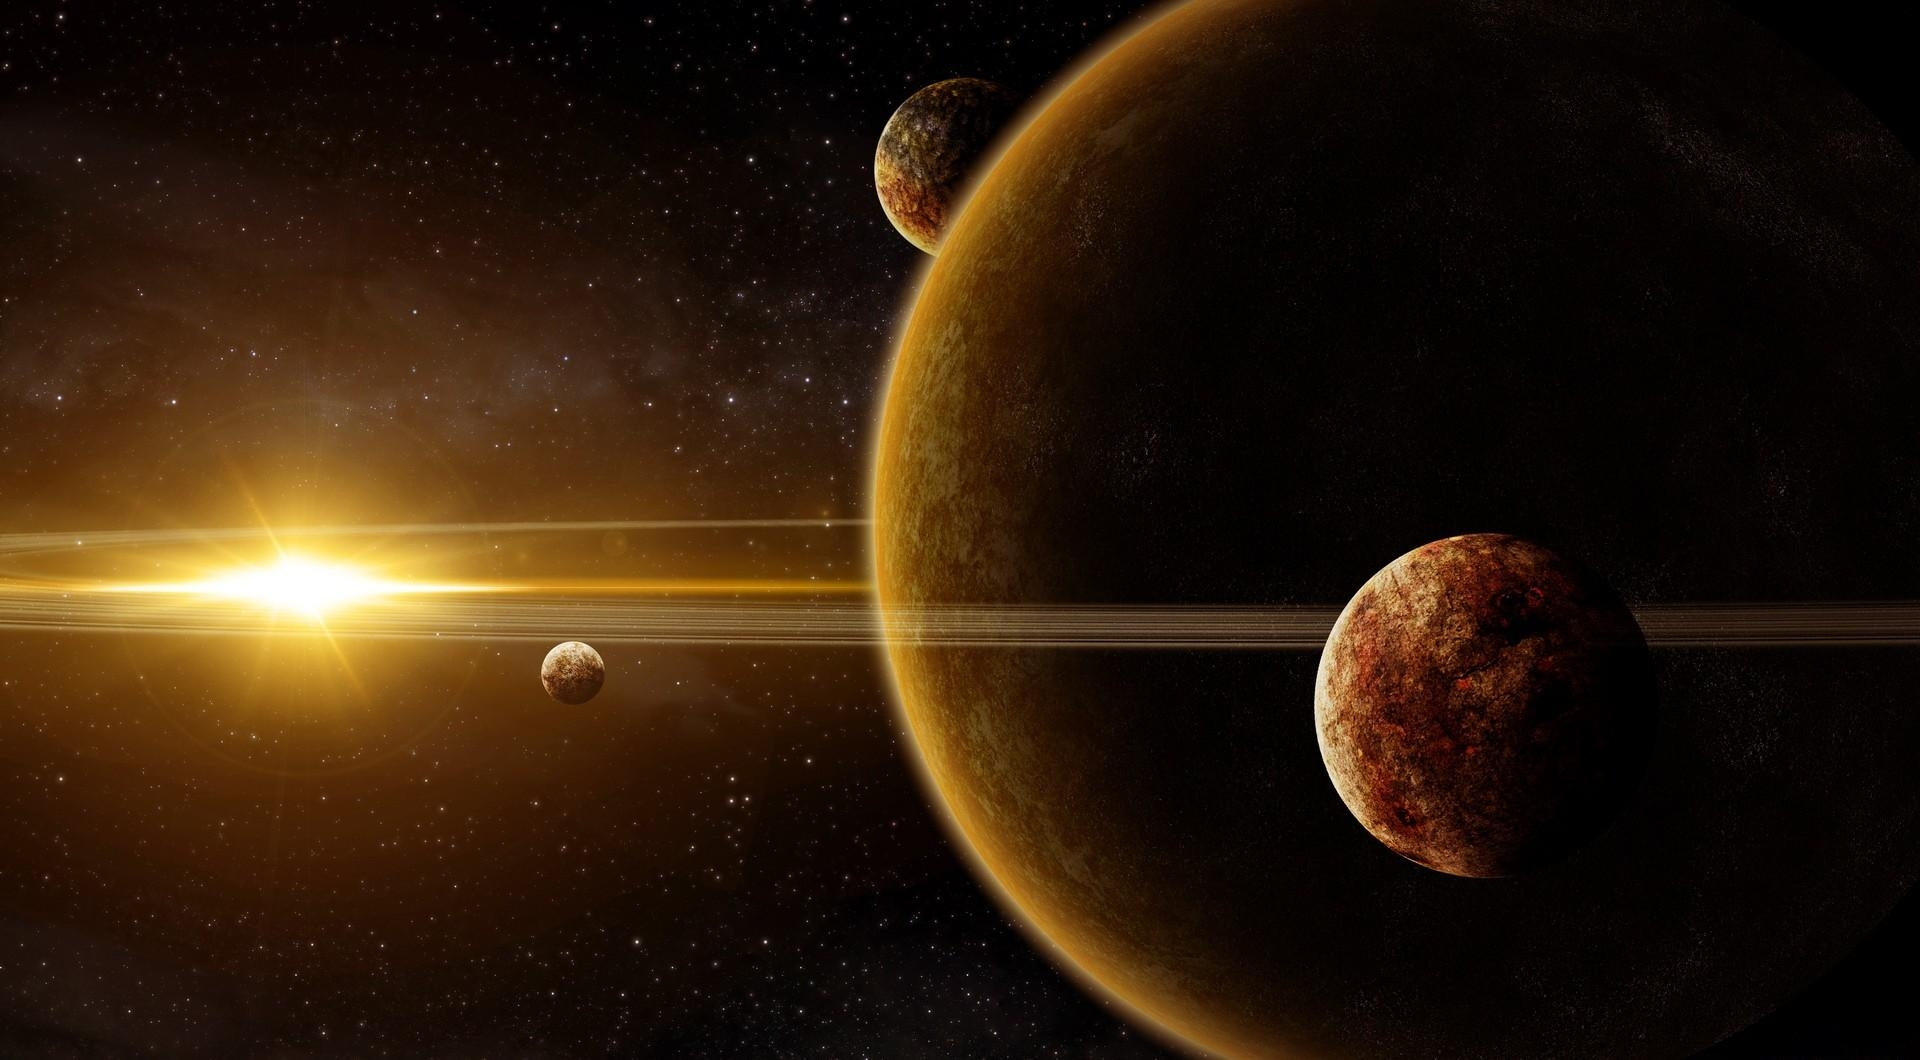 140051 download wallpaper Galaxy, Shine, Light, Beams, Rays, Stars, Universe, Planets screensavers and pictures for free